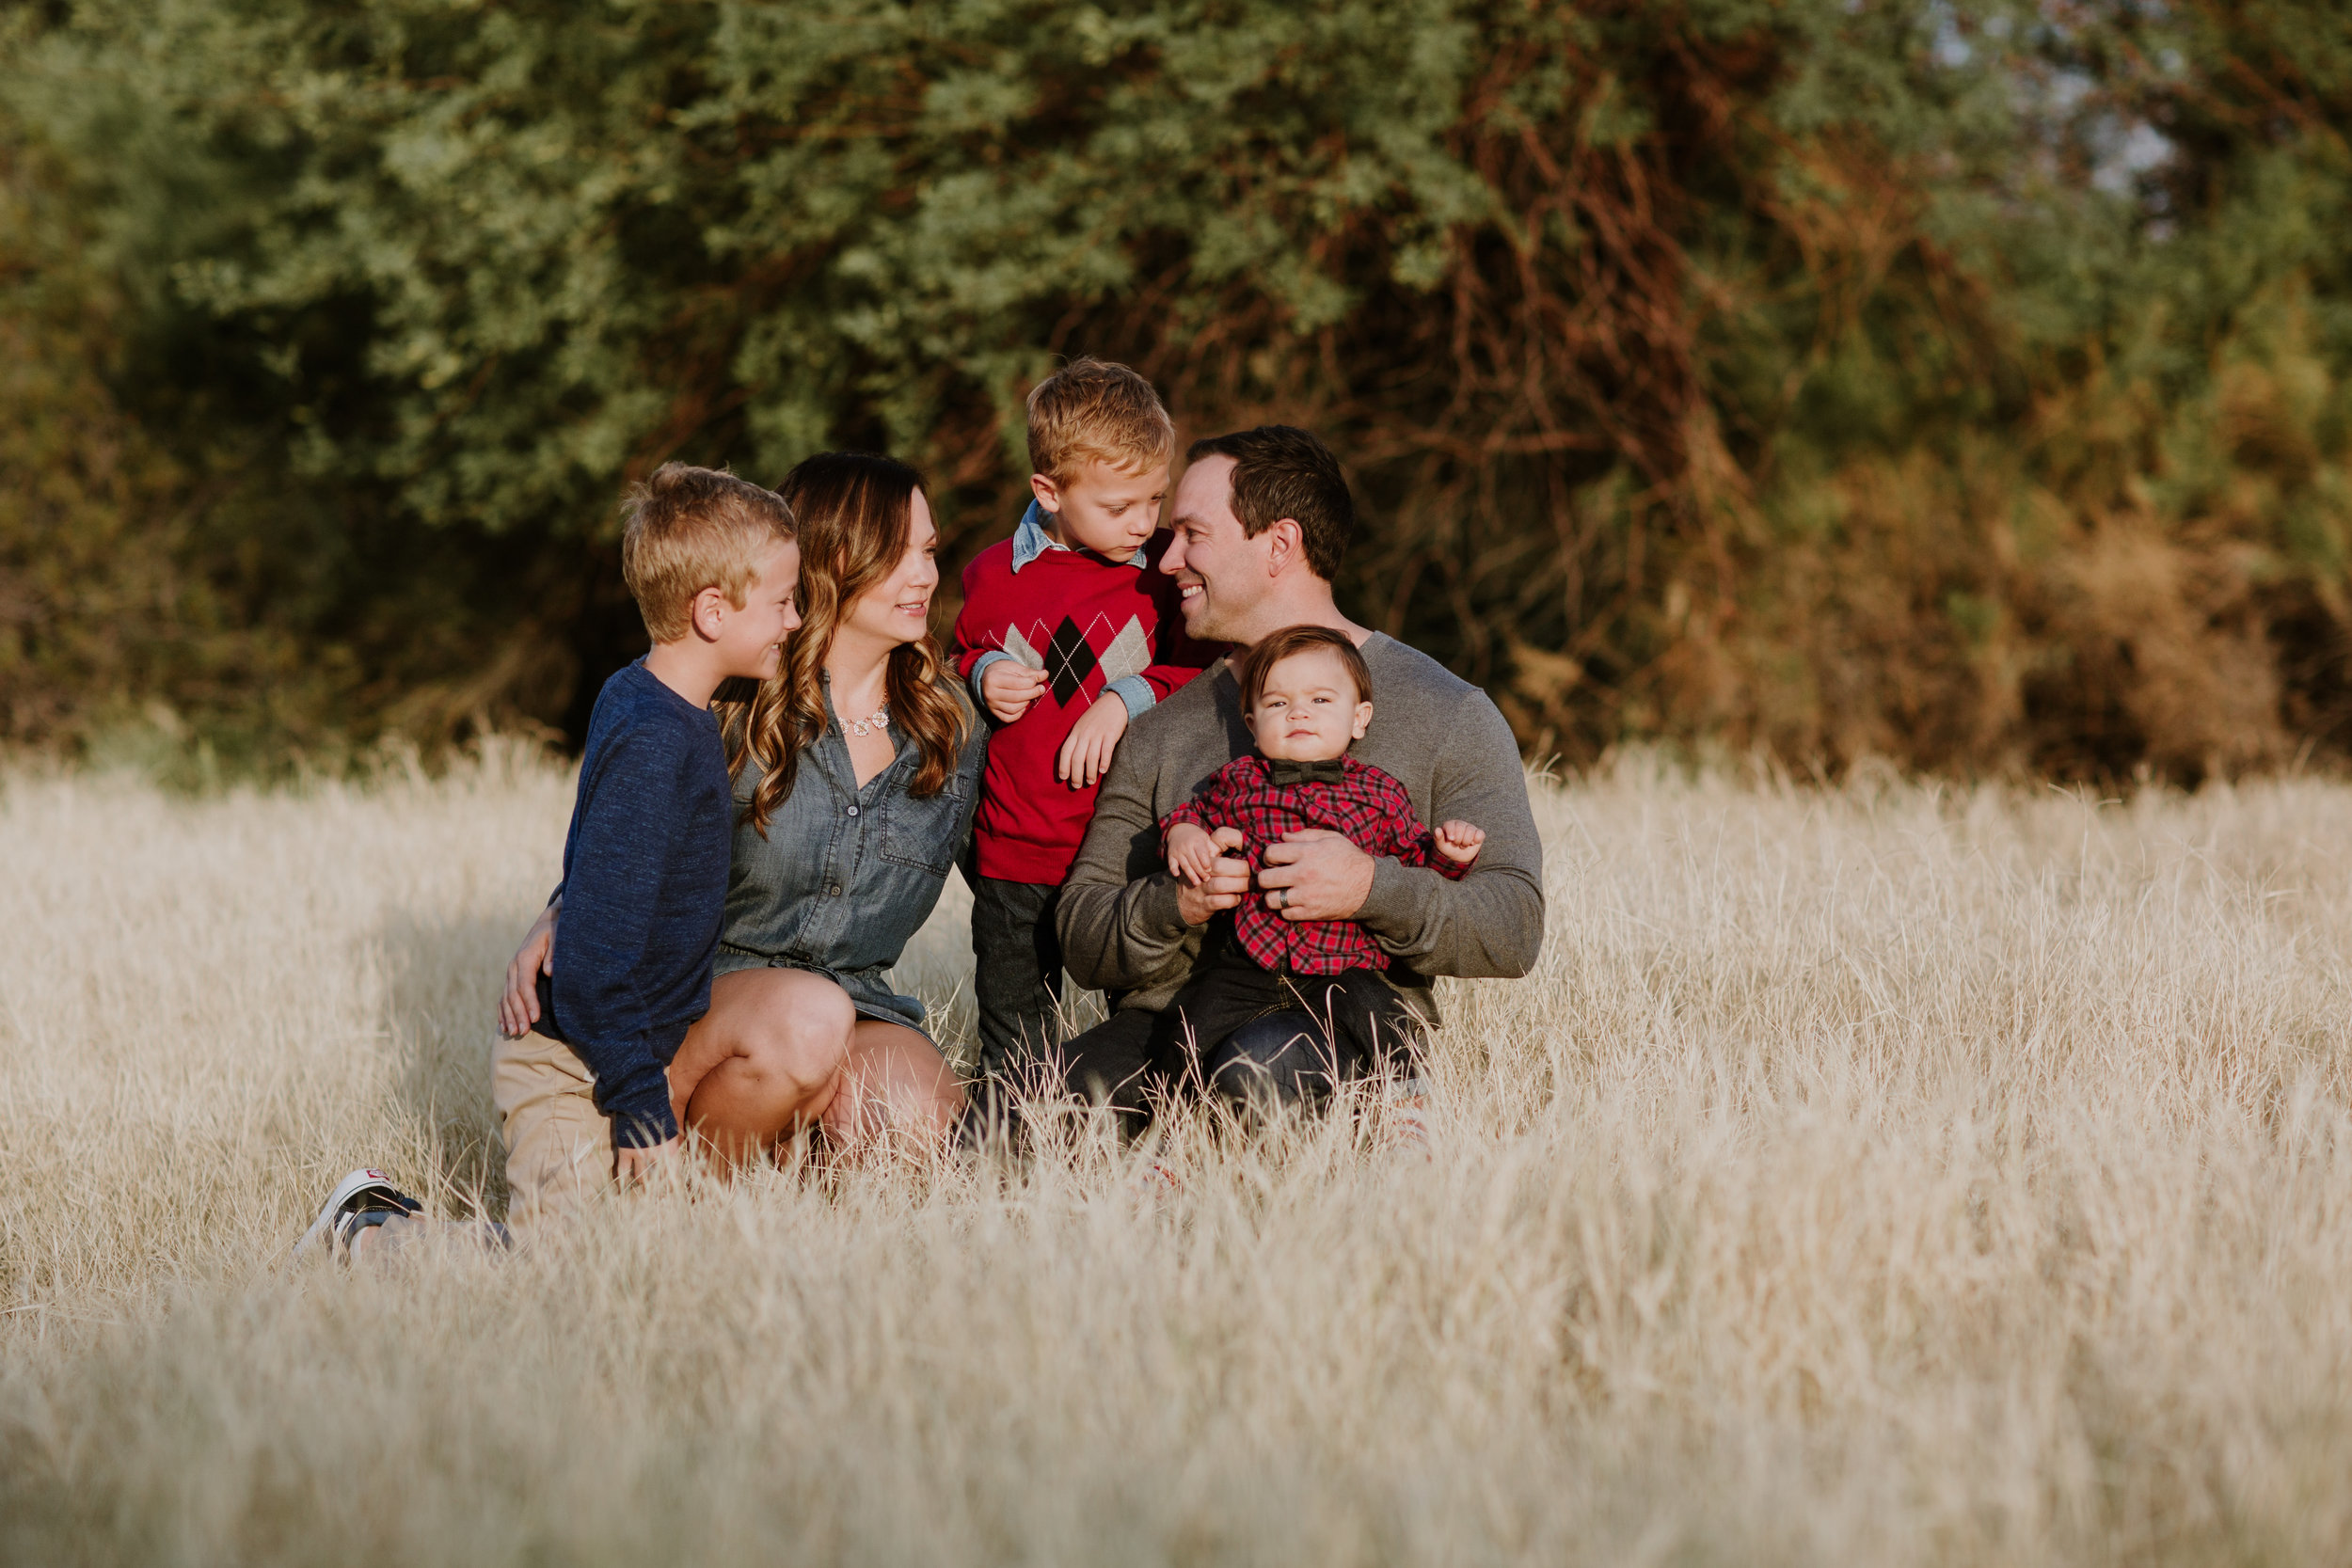 colorado-springs-family-photographer-6.jpg